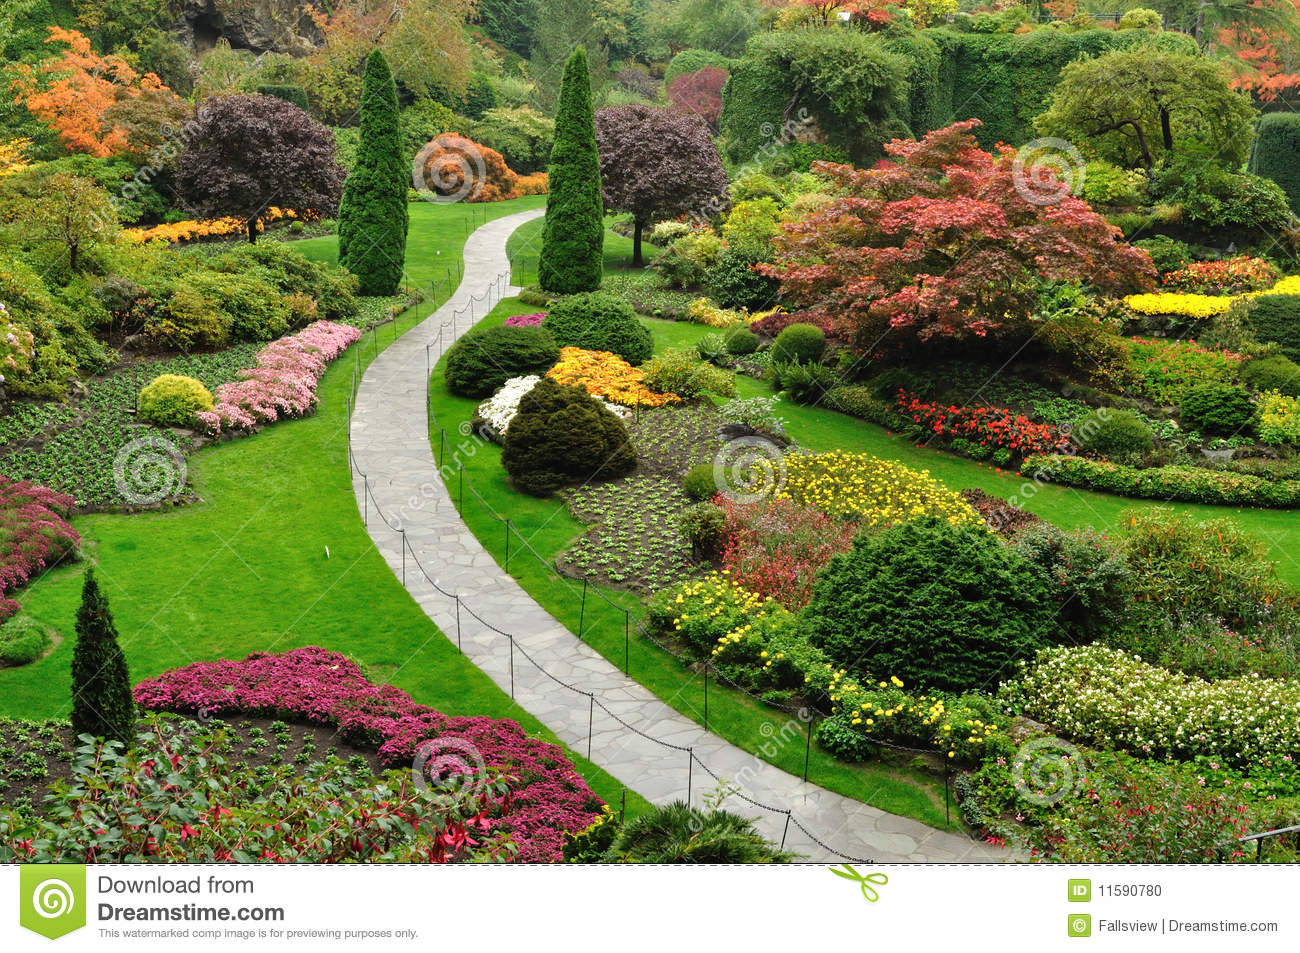 Am nagement de jardins photo stock image 11590780 for Amenagement des jardins